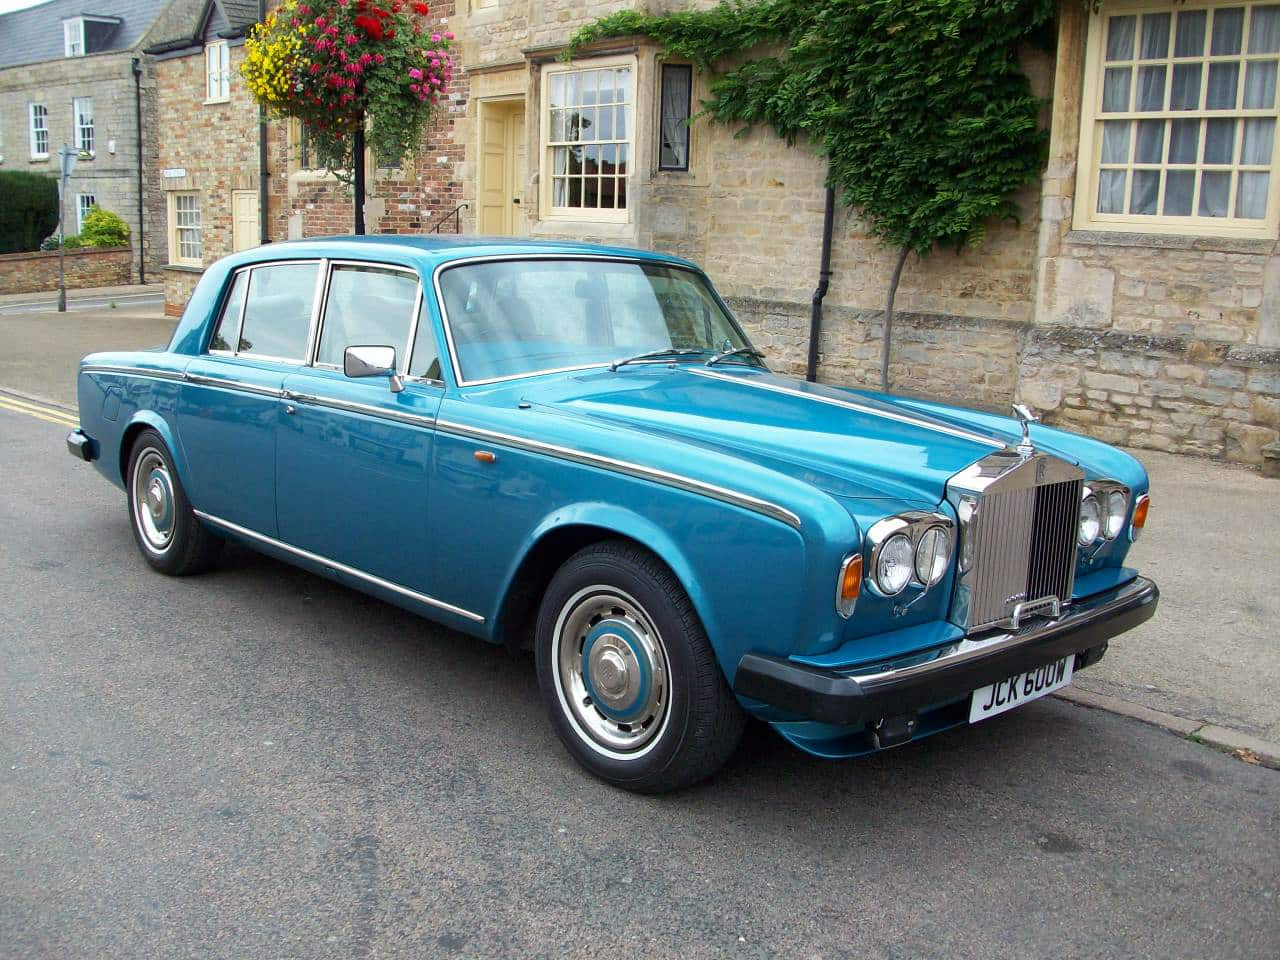 Rolls-Royce Silver Shadow - 10 cool cars for under £10,000 (The Car Expert)